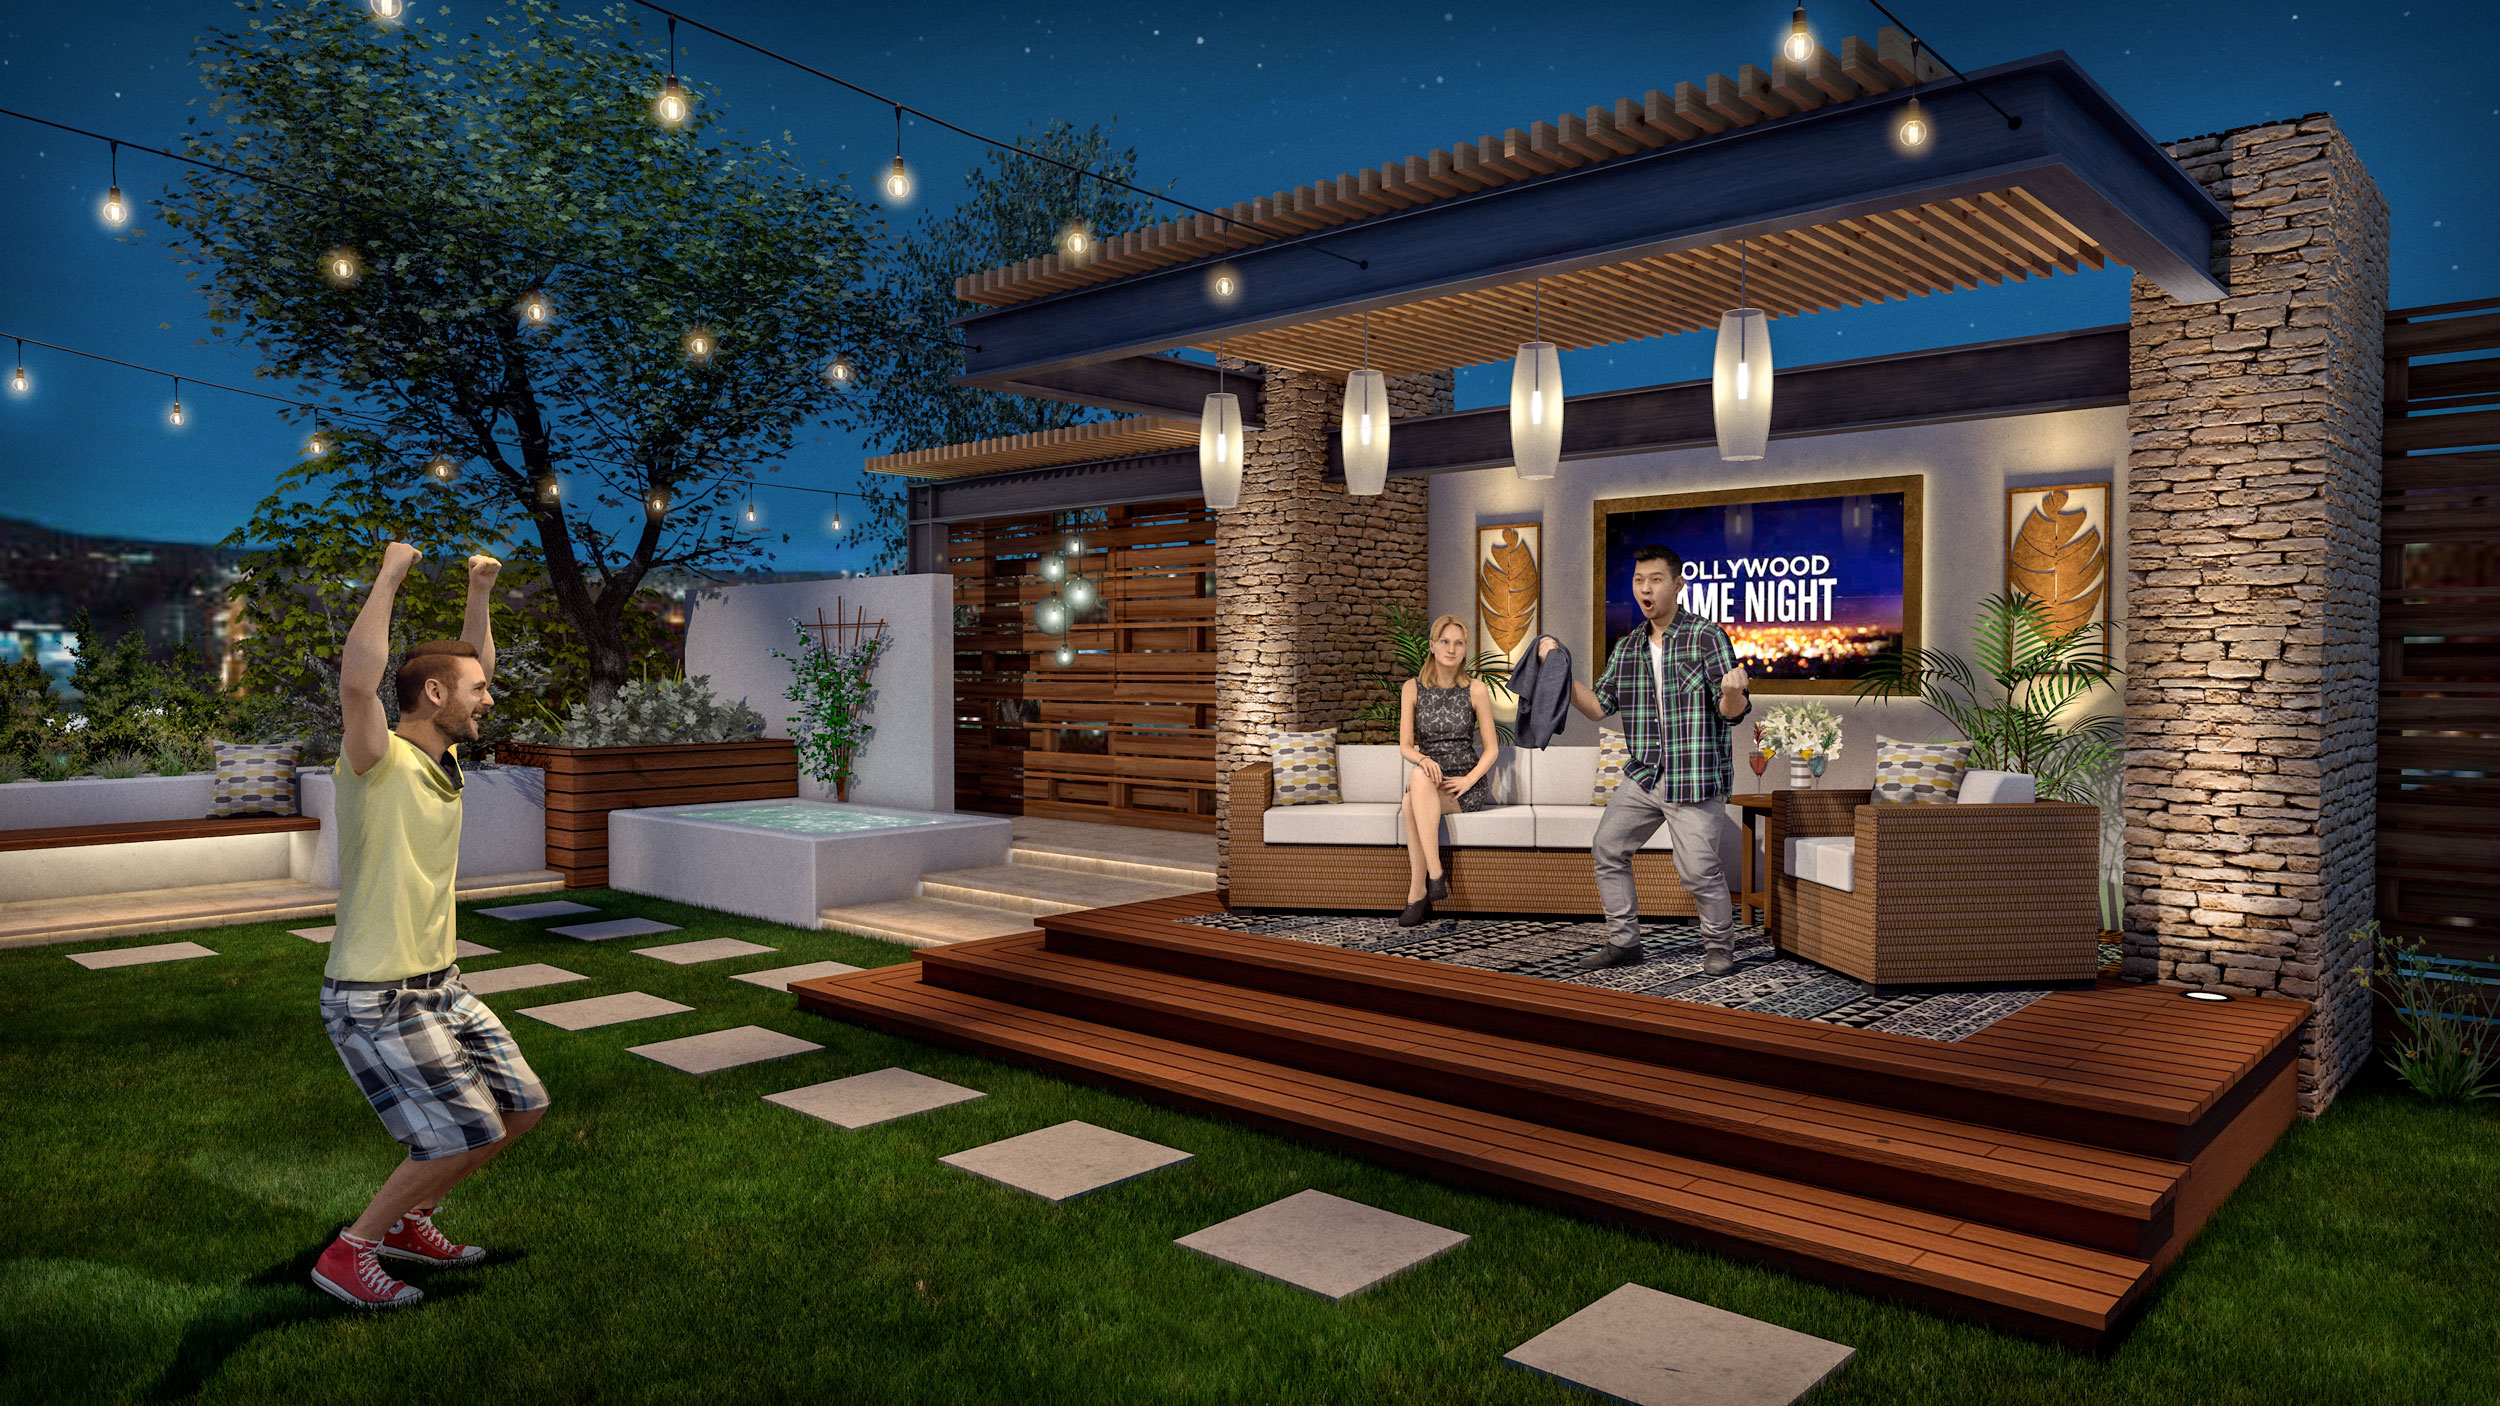 Vectorworks rendering for Hollywood Game Night tv show by Assistant Art Director Andy Broomell